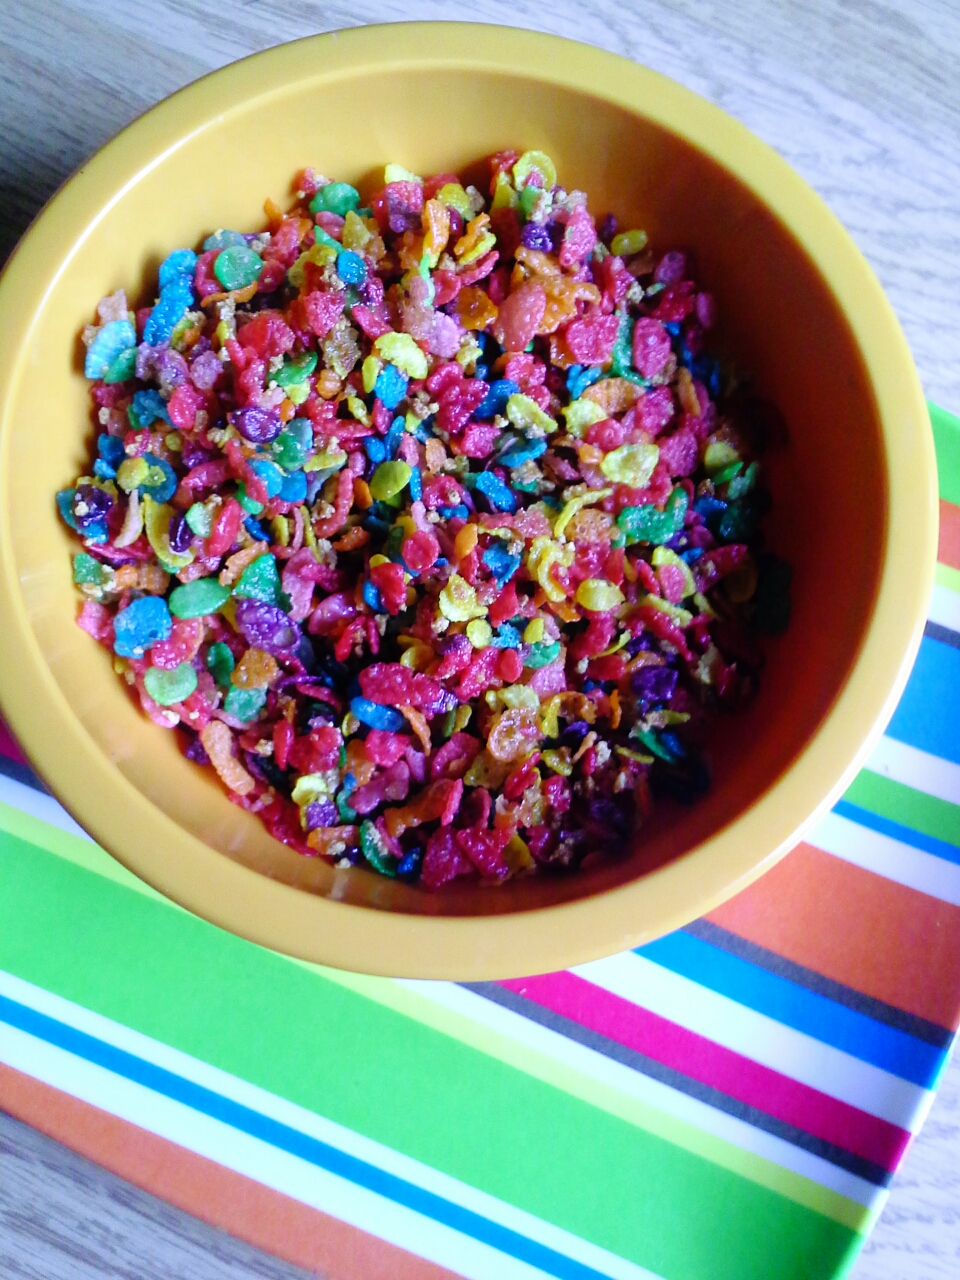 Giving you mo crunch by elizabeth gunderson epicurious for Fruity pebbles alcoholic drink